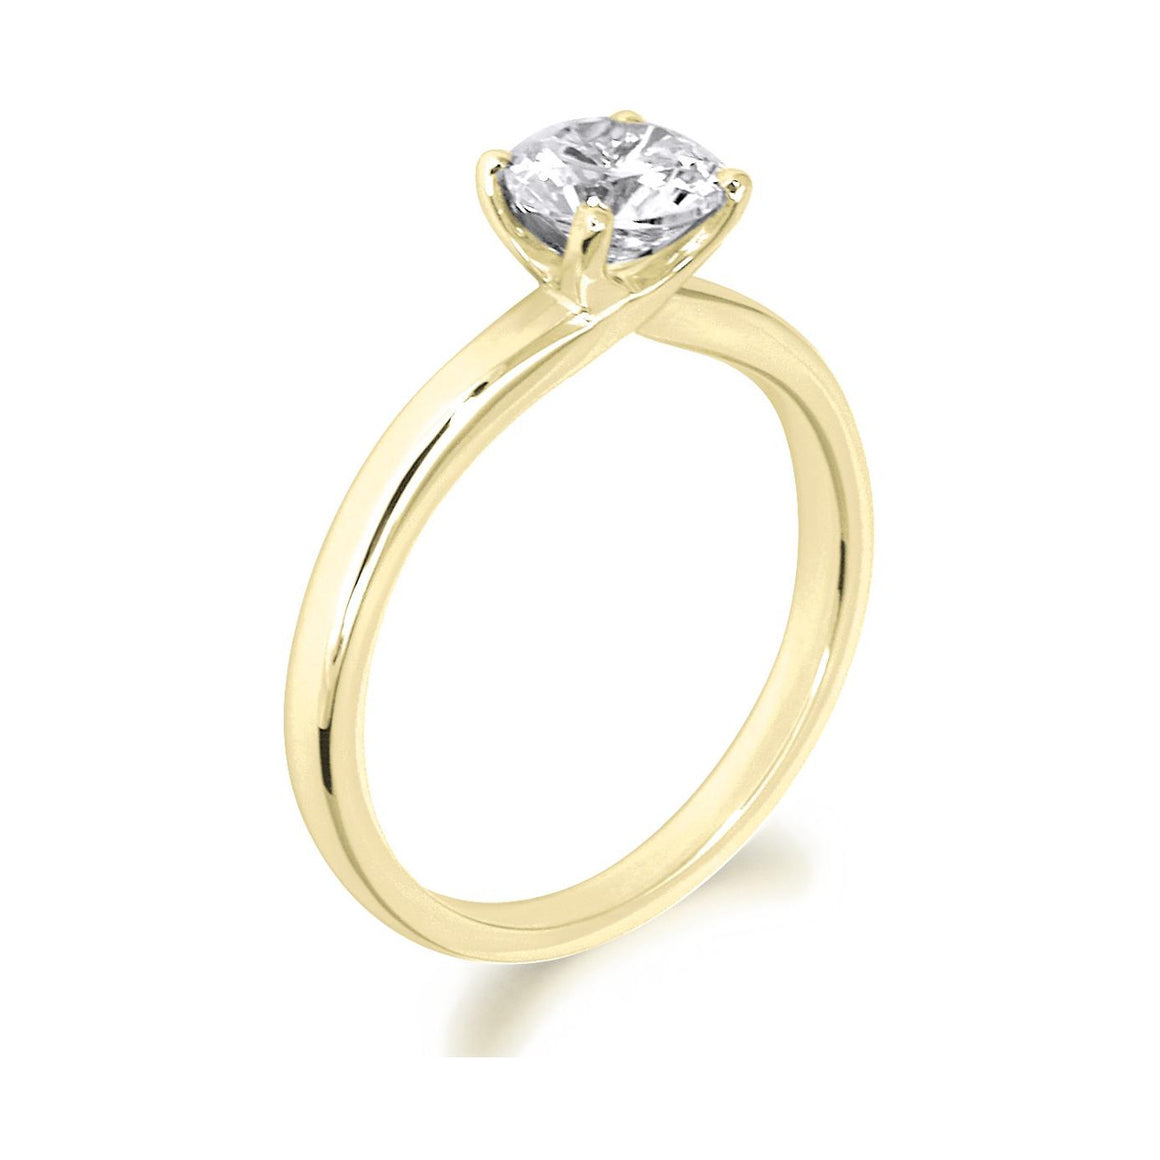 4 Claw Crossover Style Brilliant Cut 18ct Yellow Gold Solitaire